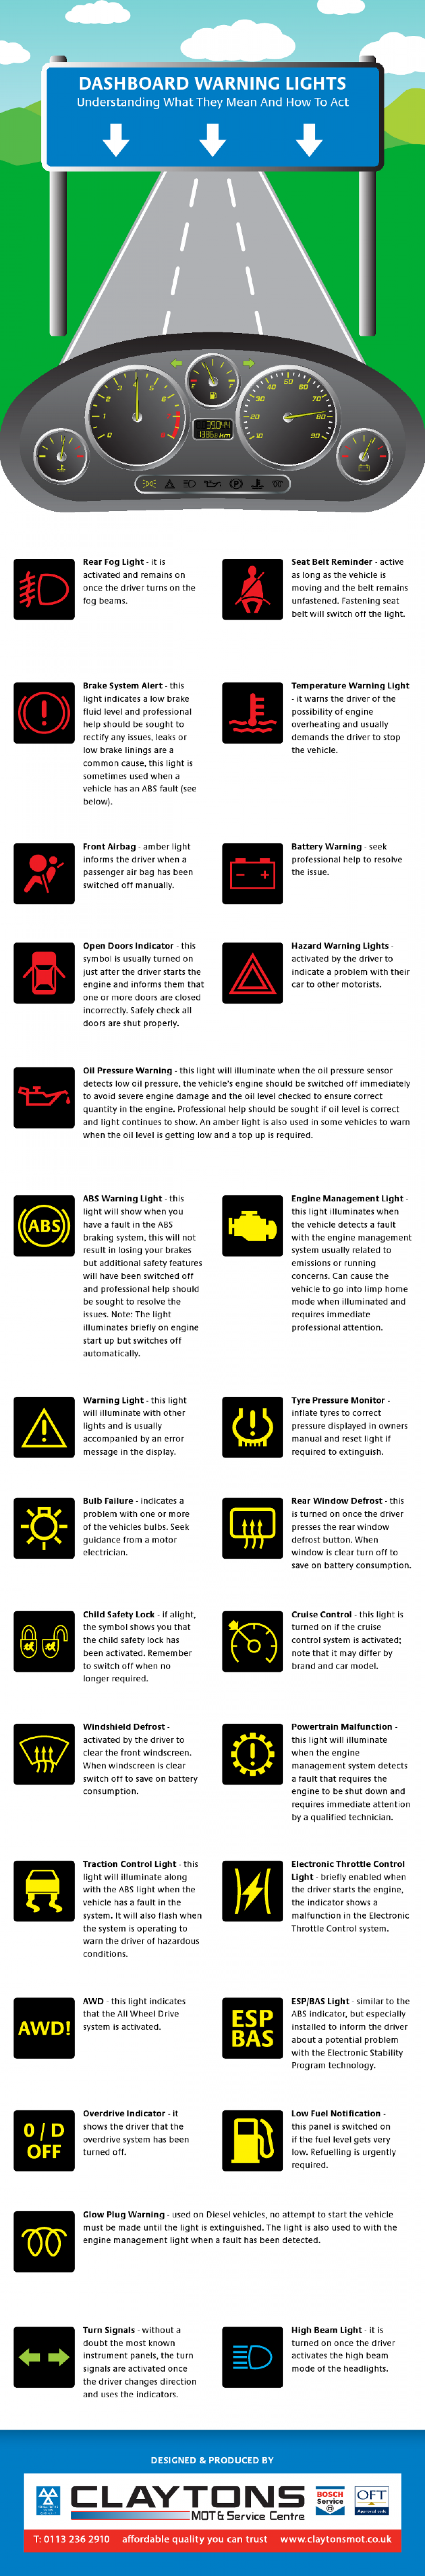 Car dashboard warning lights understanding what they mean how to act infographic